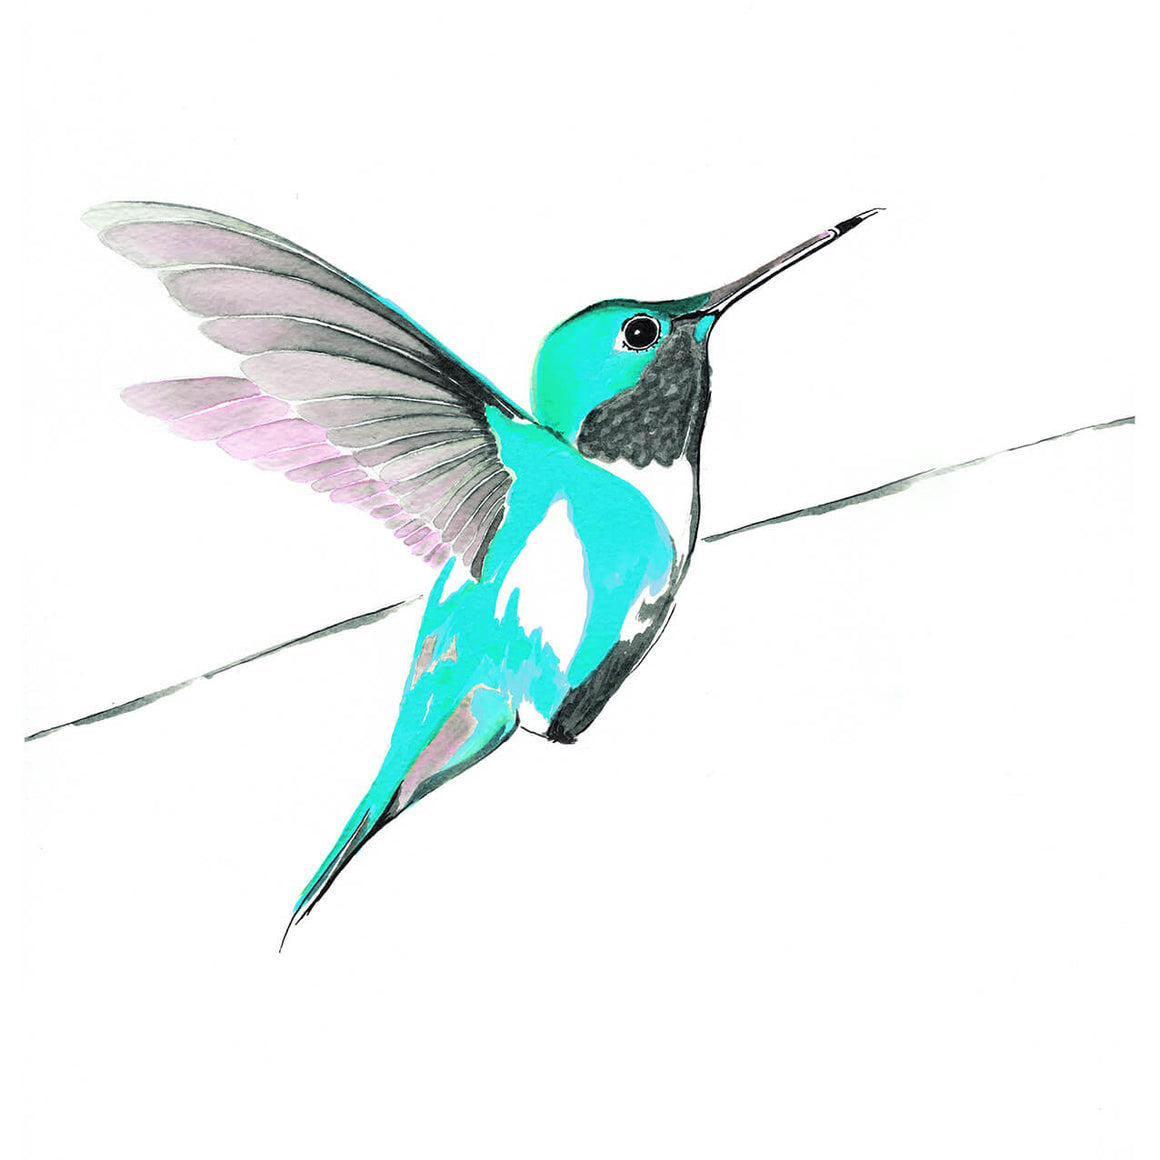 Hummingbird in blue limited edition print by Anna Jacobs